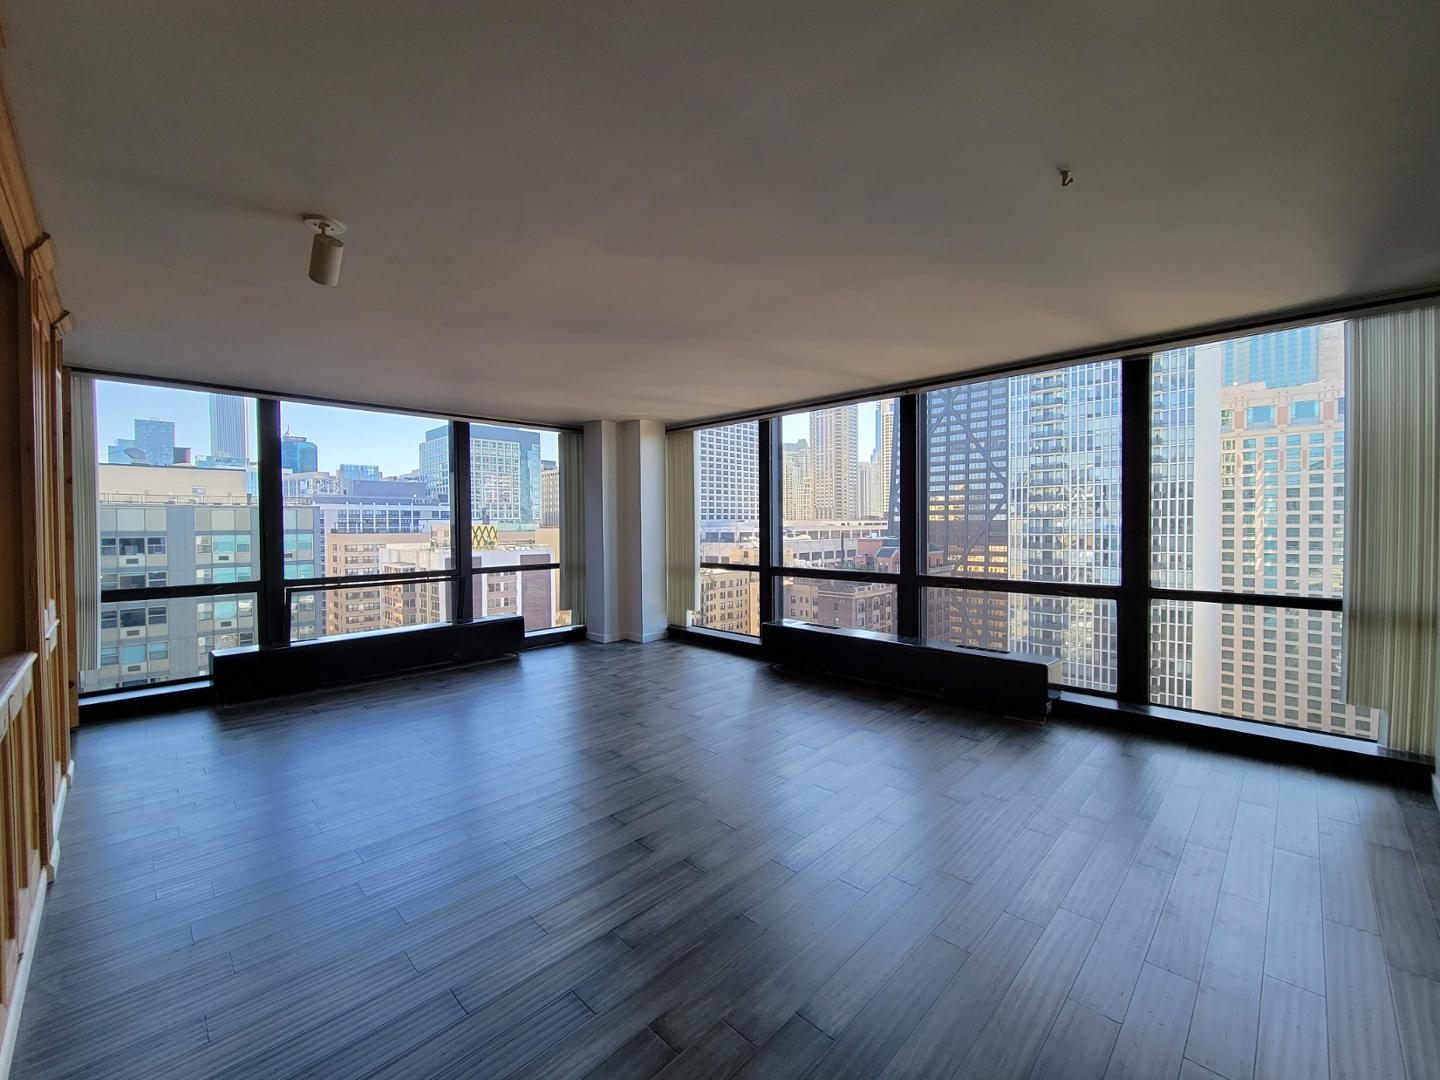 910 N Lake Shore Dr #2416, Chicago, IL - $1,950 USD/ month